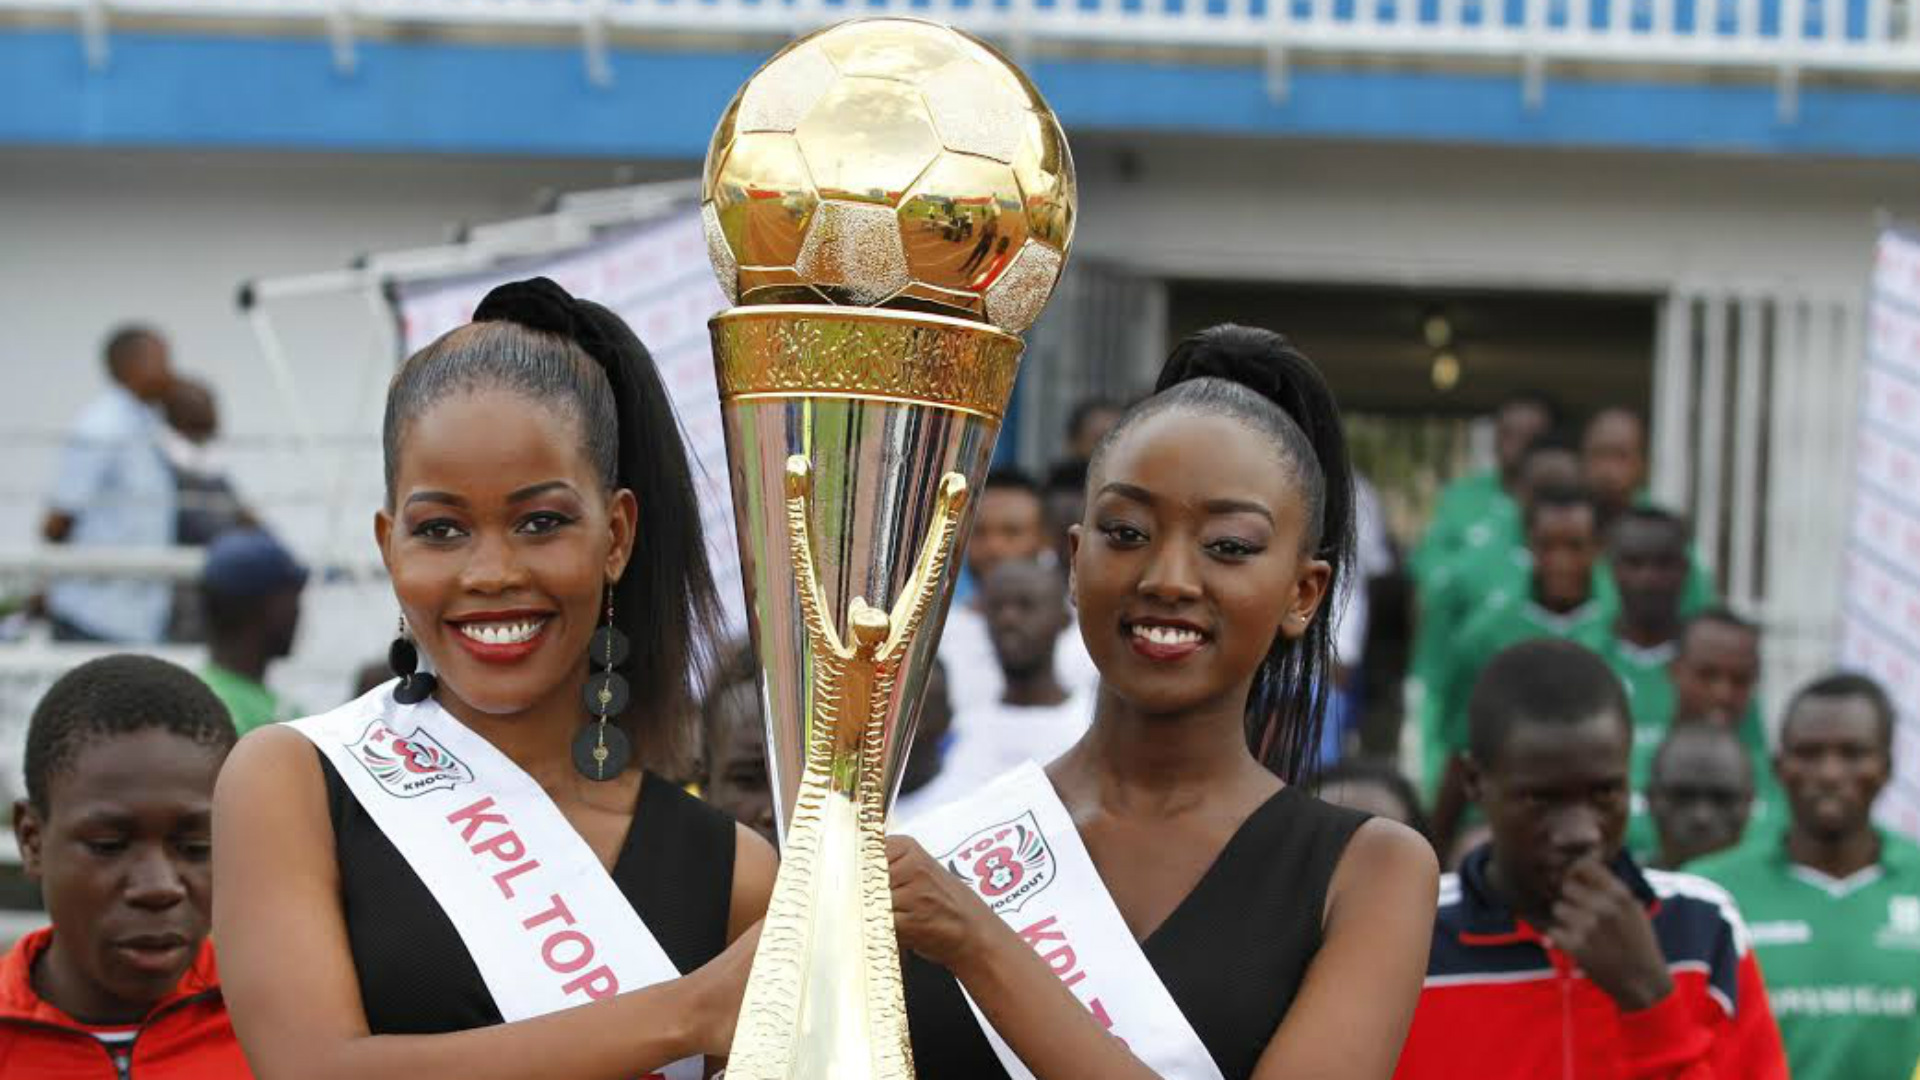 As Gor Mahia prepares to take on Muhoroni Youth in the final of KPL Top 8, Goal presents past winners